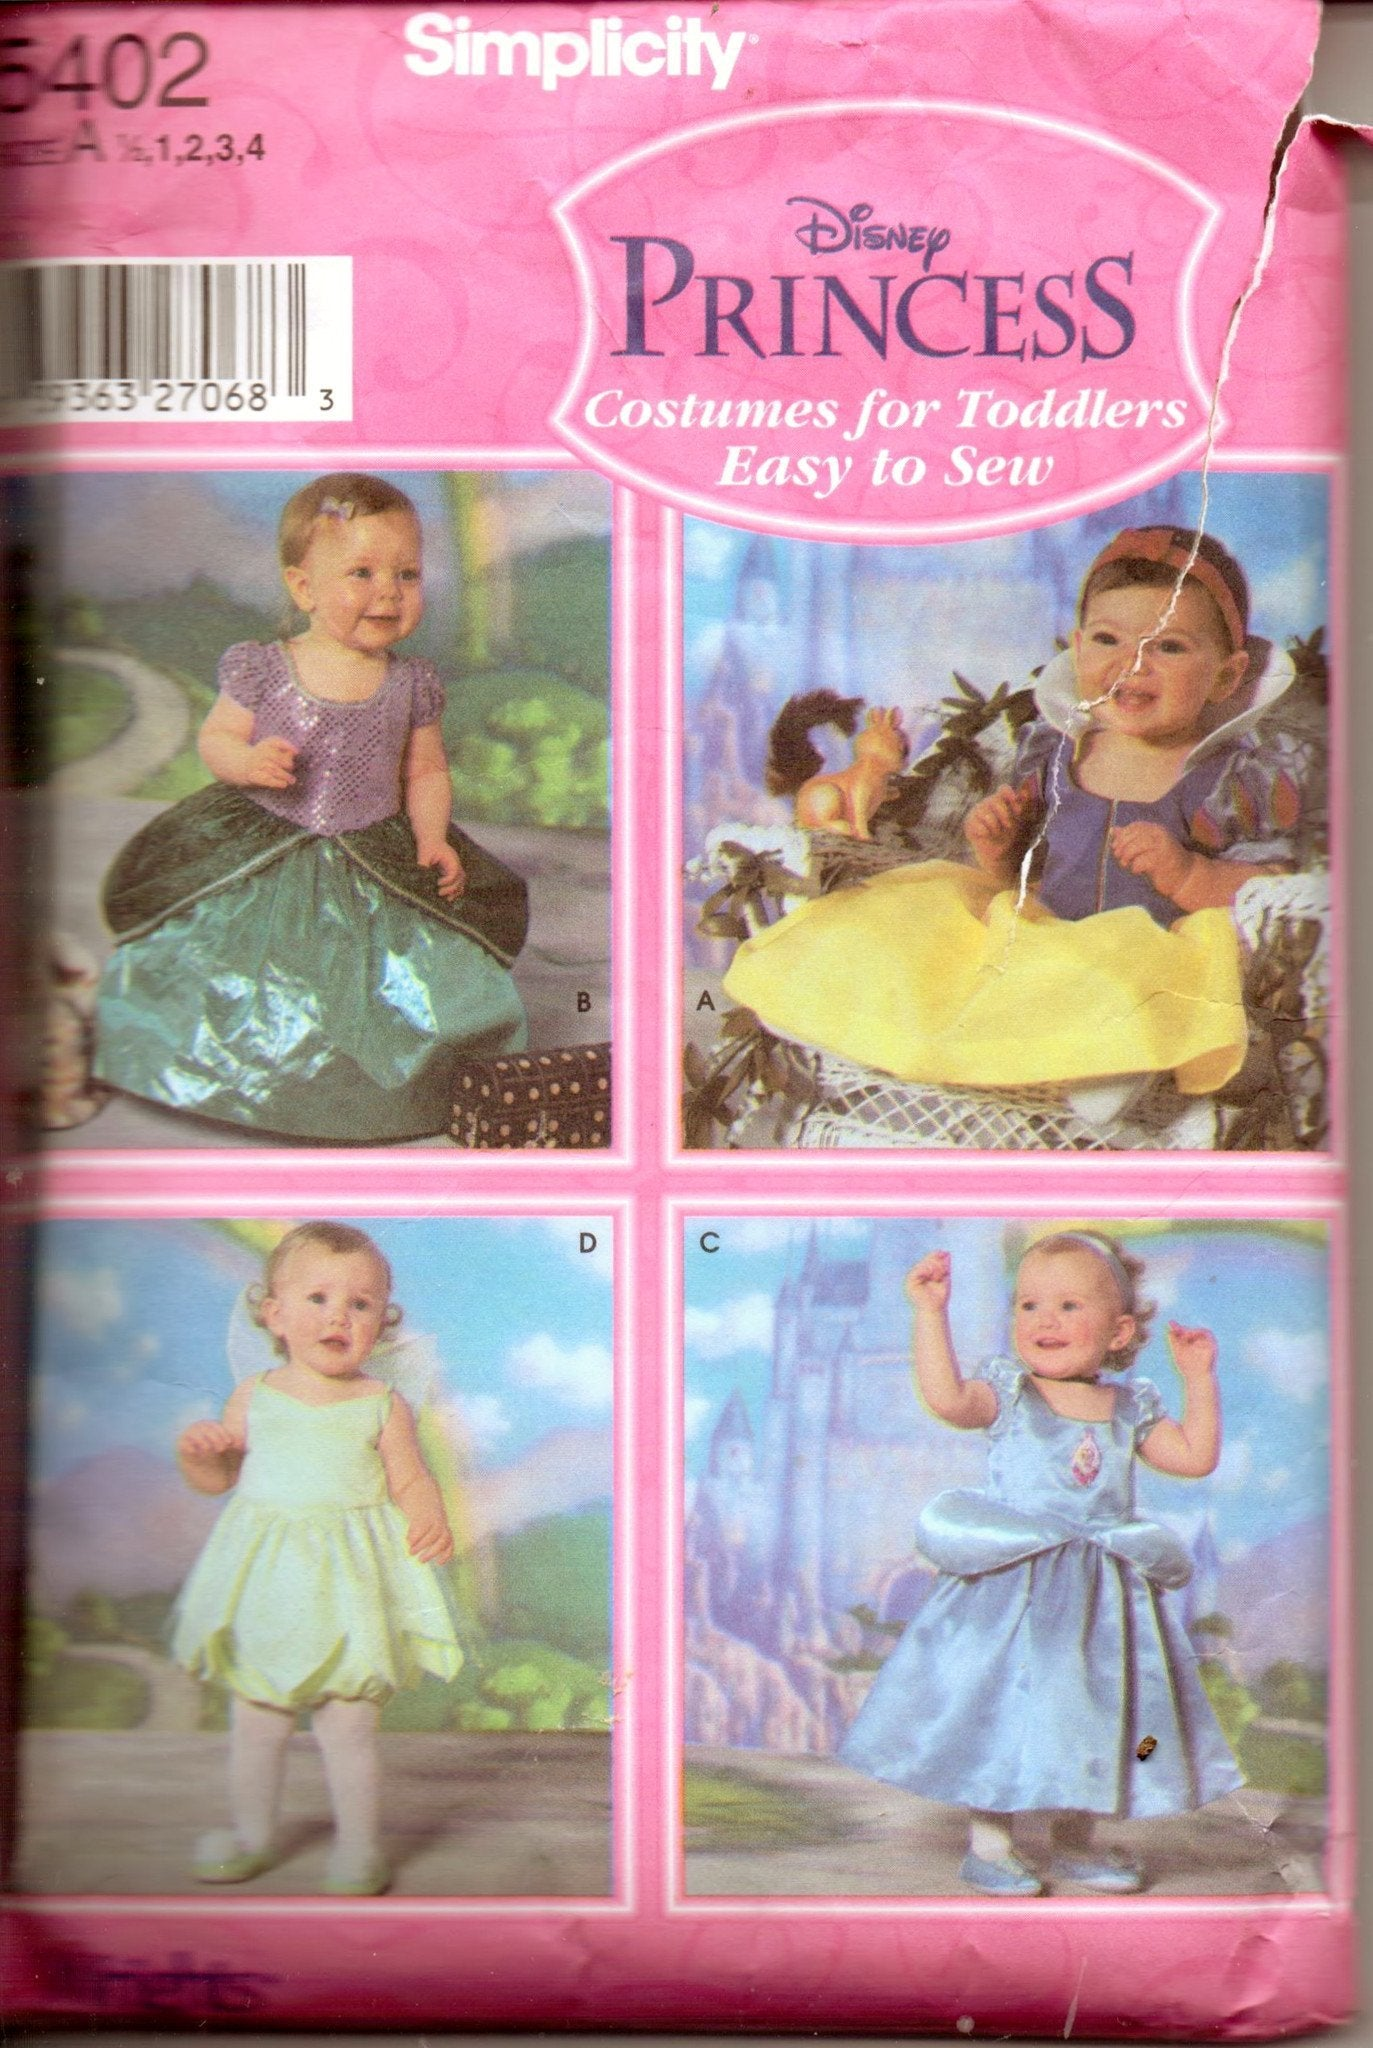 Simplicity 5402 Toddler Disney Princess Halloween Costume Pattern Tinkerbell Snow White - VintageStitching - Vintage Sewing Patterns